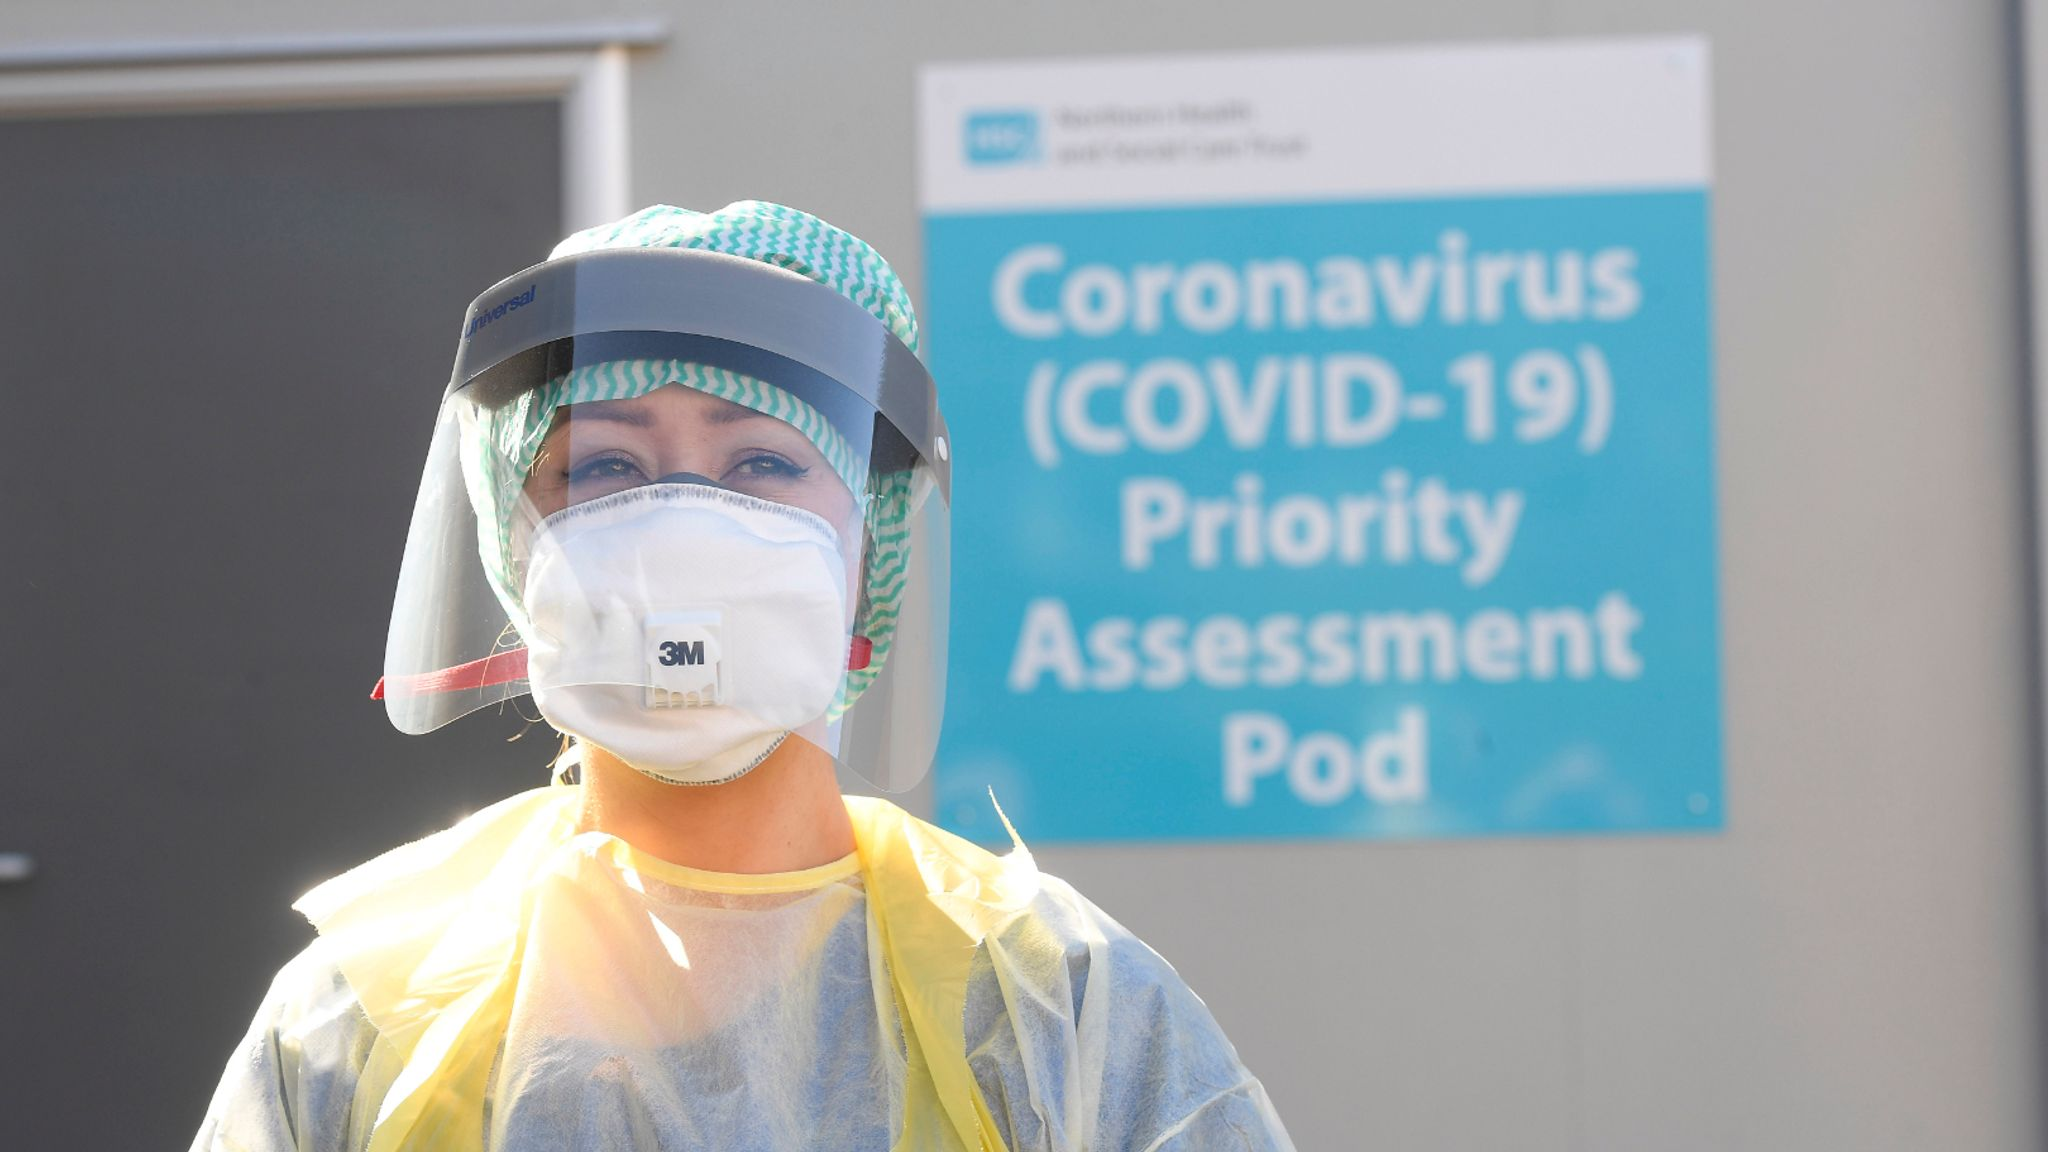 Coronavirus 87 Cases Of Covid 19 Confirmed In Uk After Biggest Daily Jump Uk News Sky News